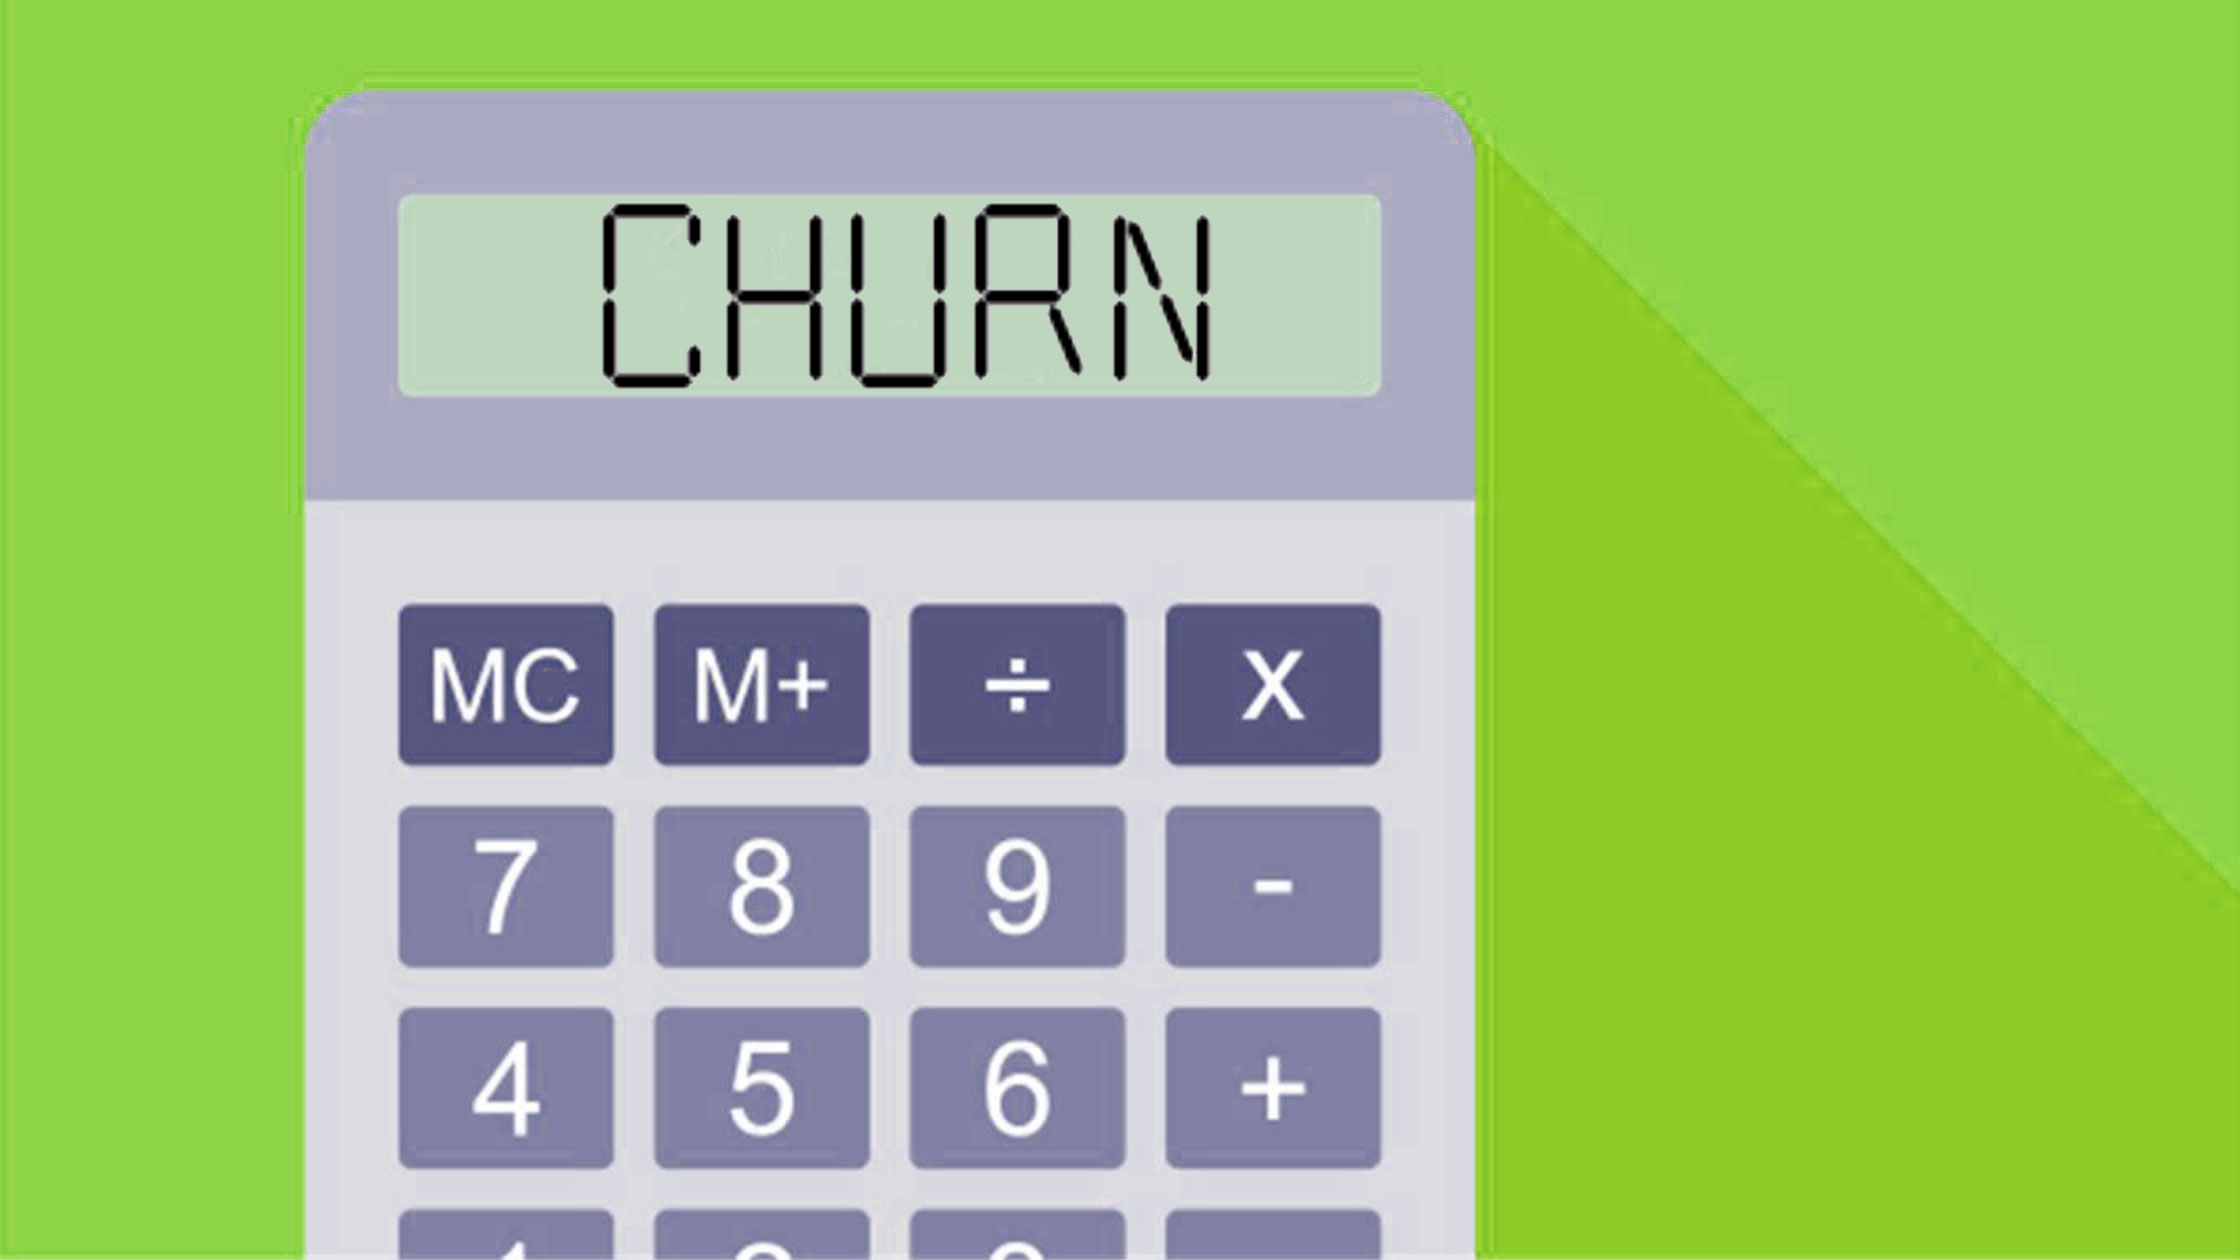 How to Calculate Your Churn Rate